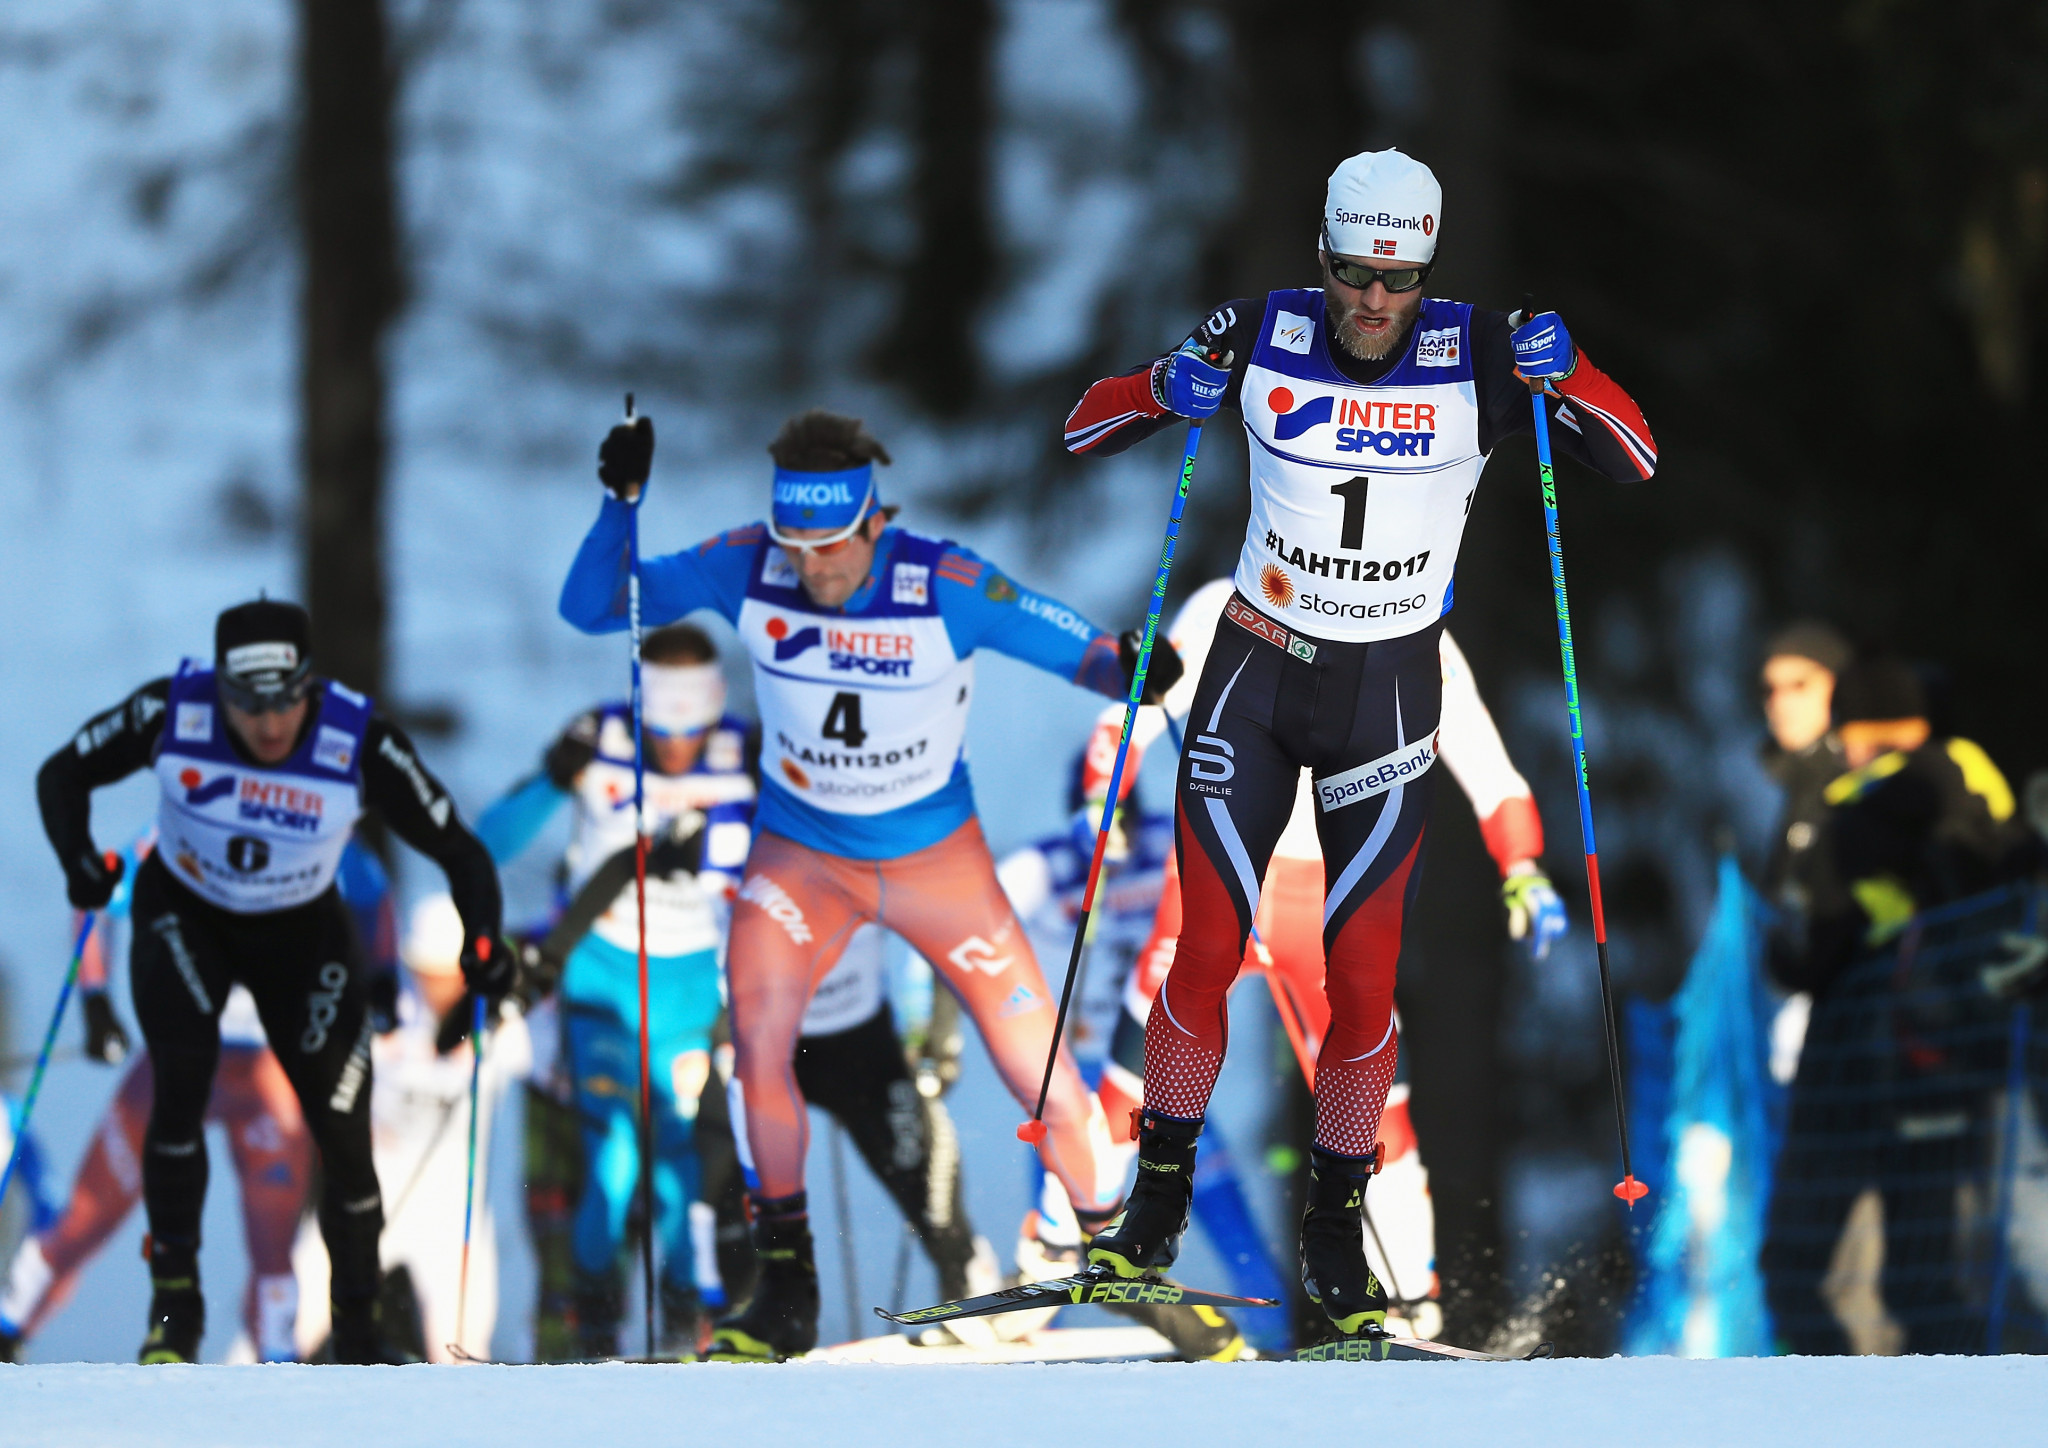 The agreement covers the FIS Nordic World Ski Championships in 2023 and 2025 ©Getty Images